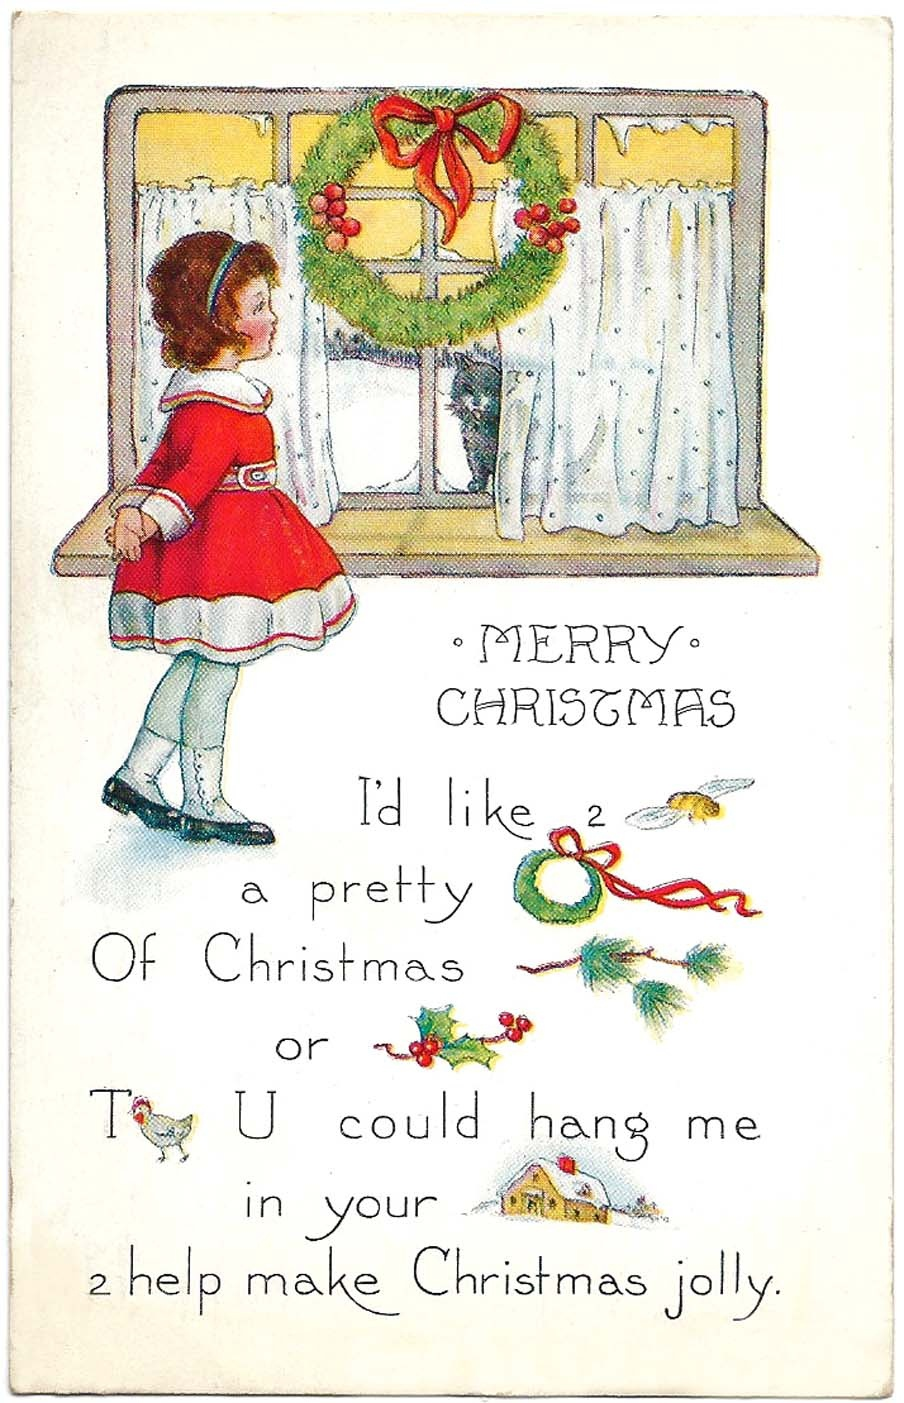 Free Printable Christmas Cards - From Antique Victorian To Modern - Free Hallmark Christmas Cards Printable